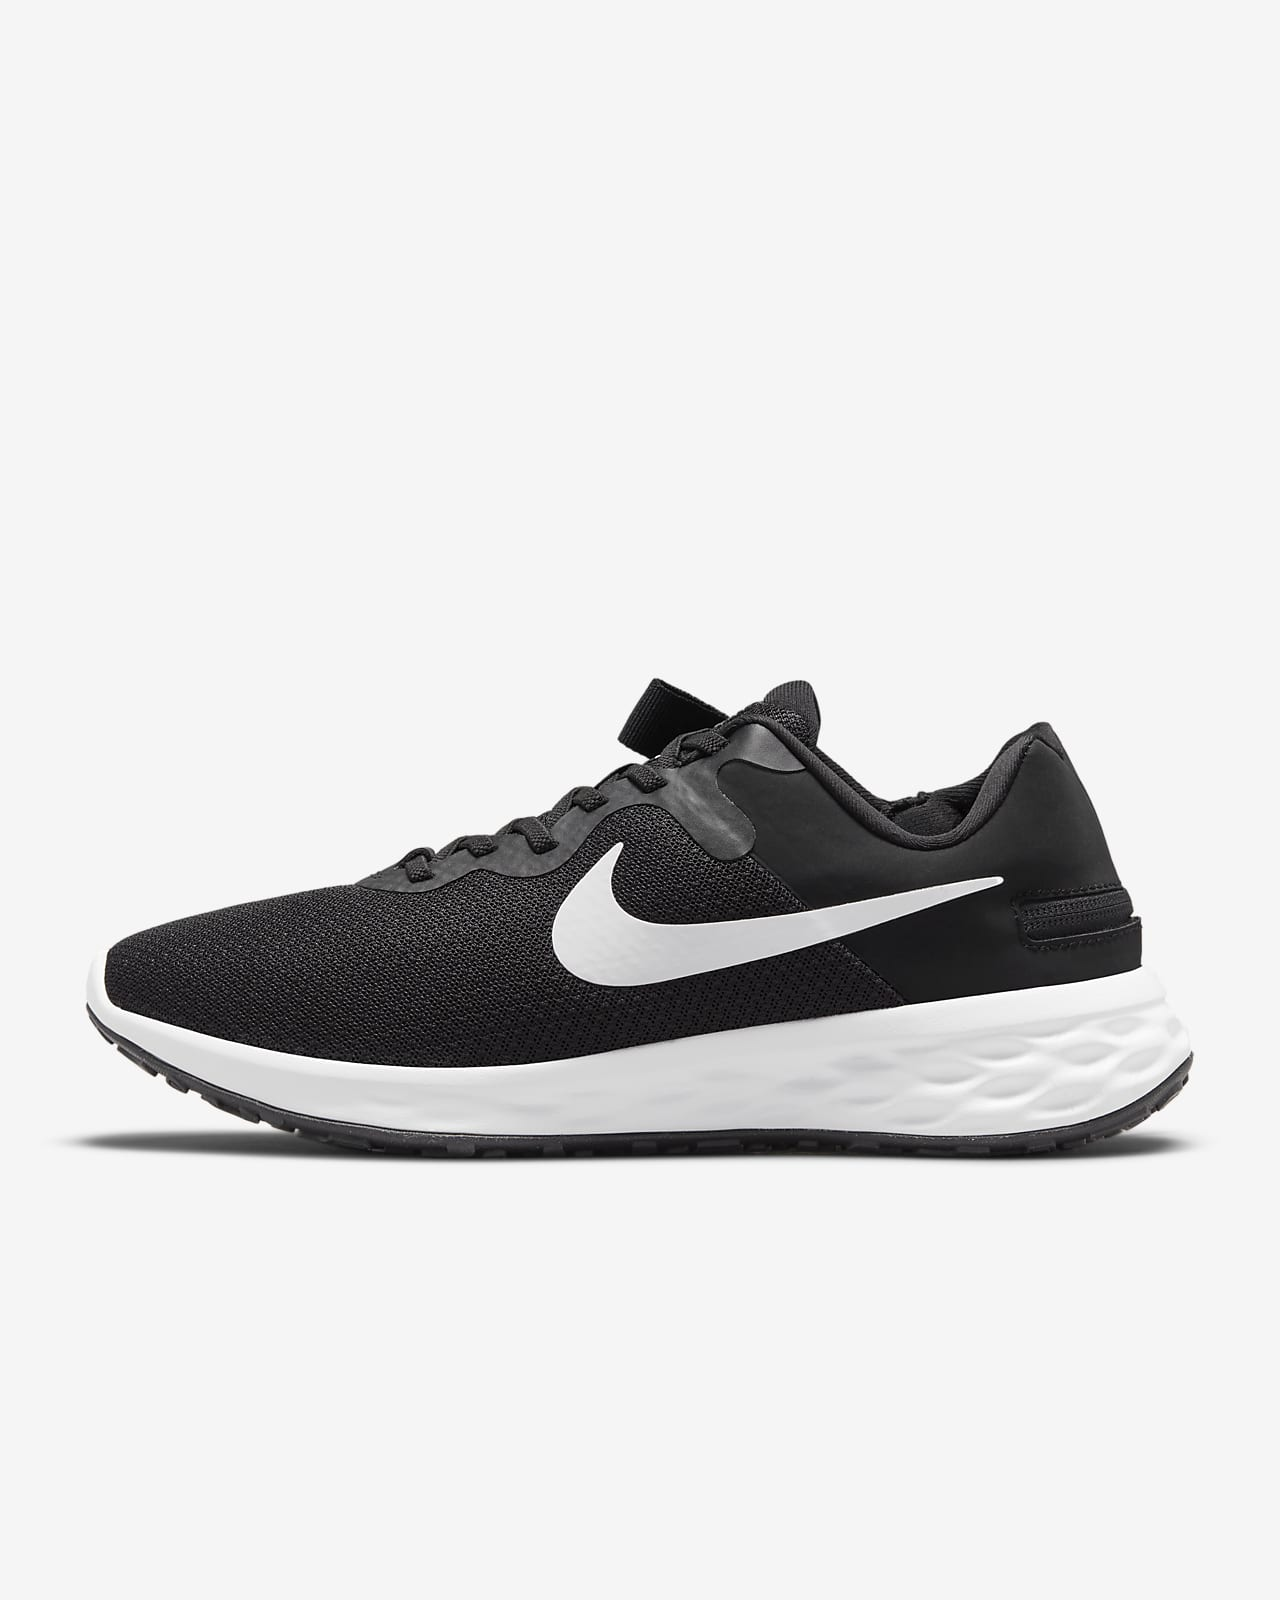 Nike Revolution 6 FlyEase Next Nature Men's Easy On/Off Road Running Shoes